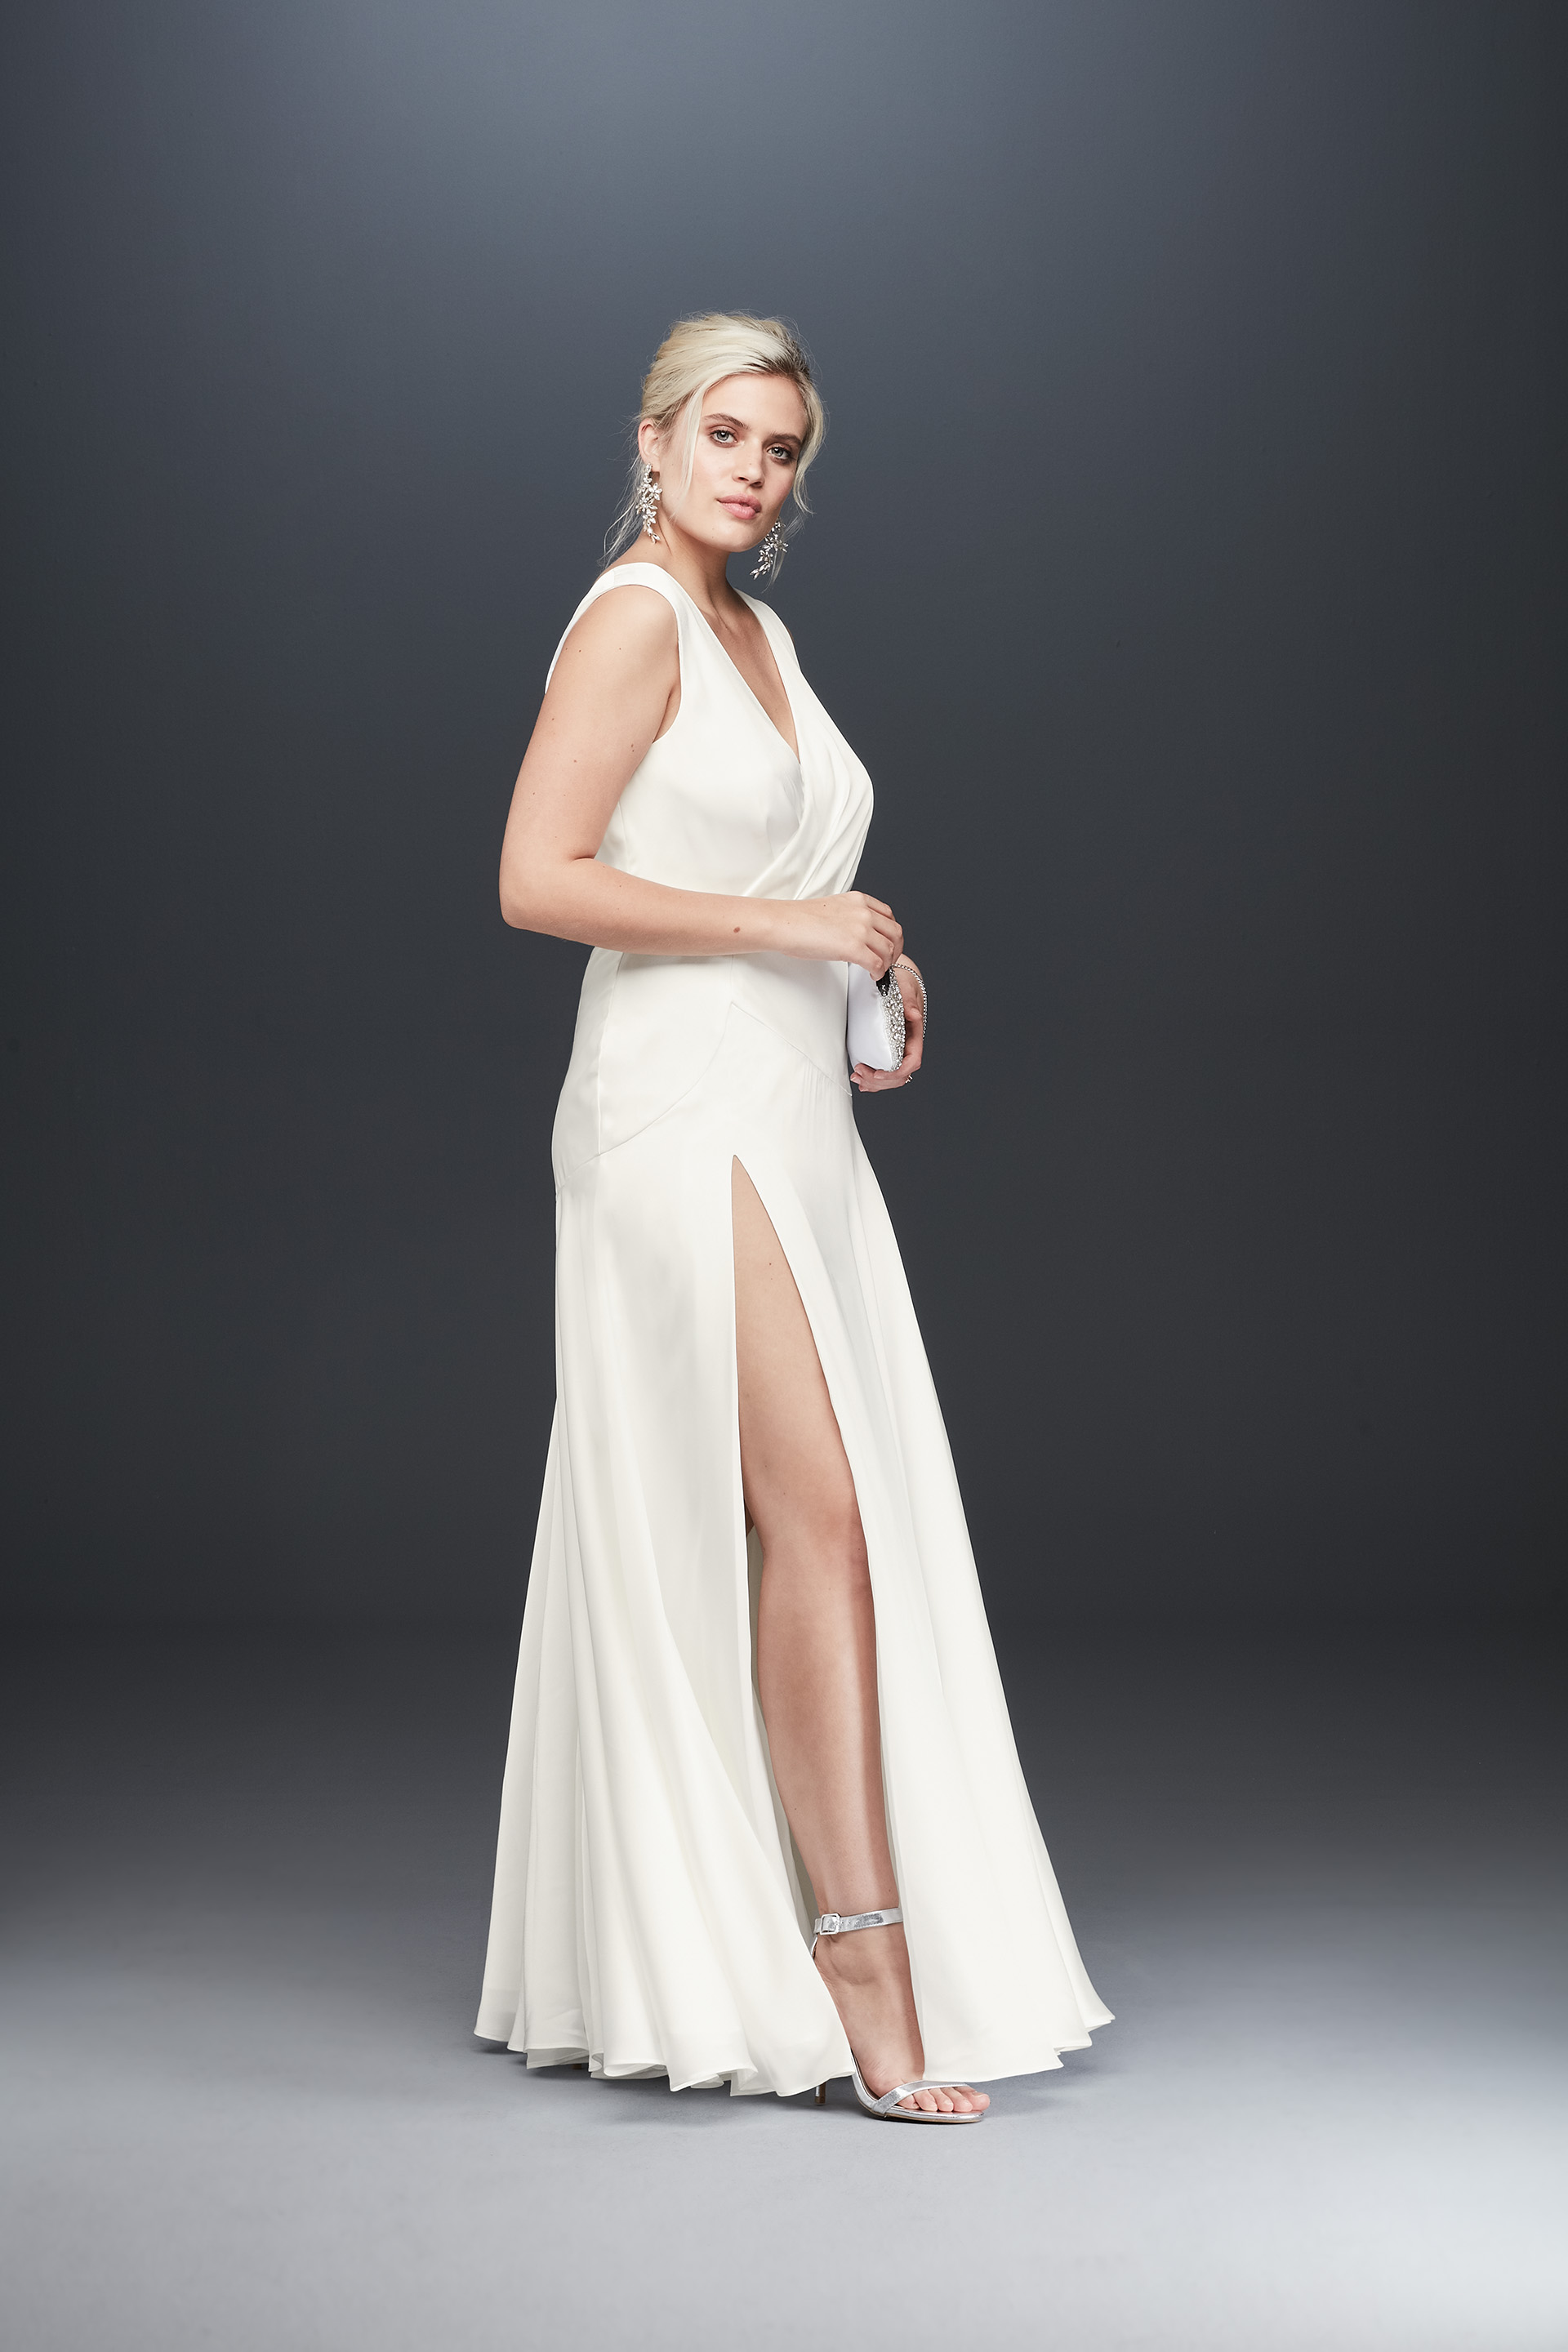 Bride in sating tank long wedding dress with slit from Fame & Partners x David's Bridal collection